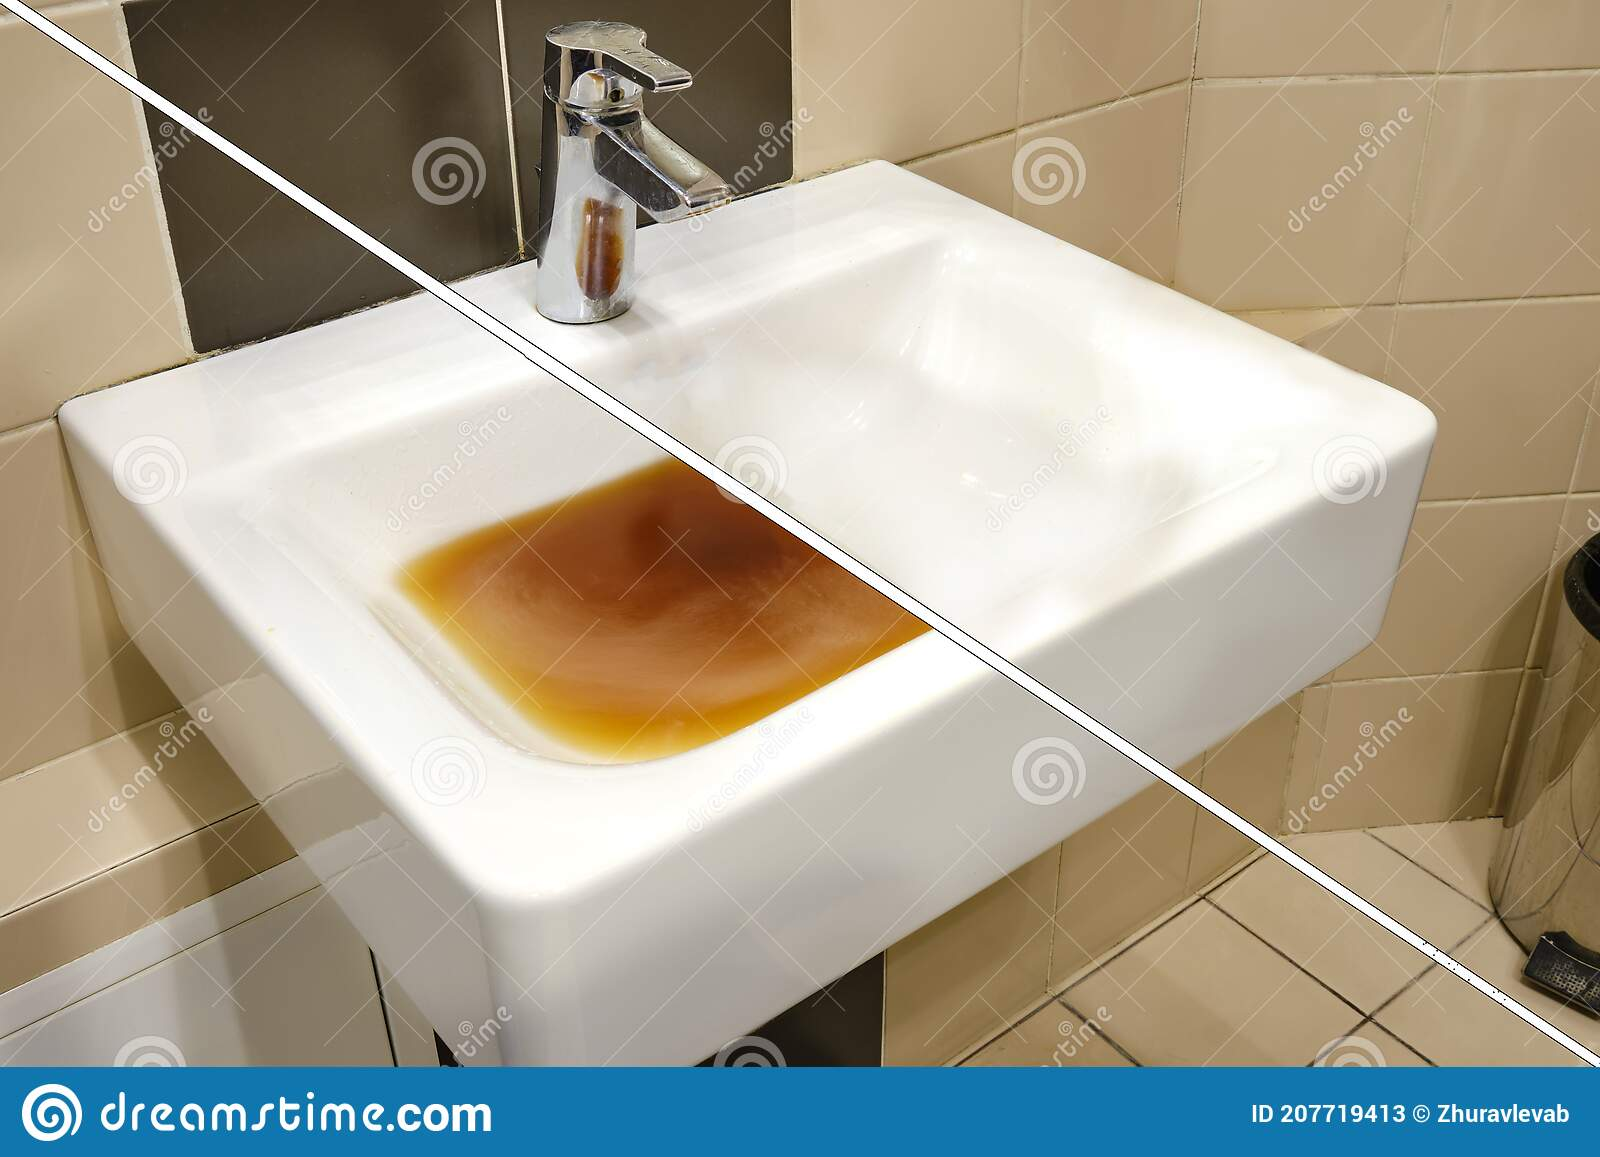 Dirty Sink Before And After Clearing The Blockage Clog Problems In The Bathroom And Toilet Stock Image Image Of Clean Garbage 207719413